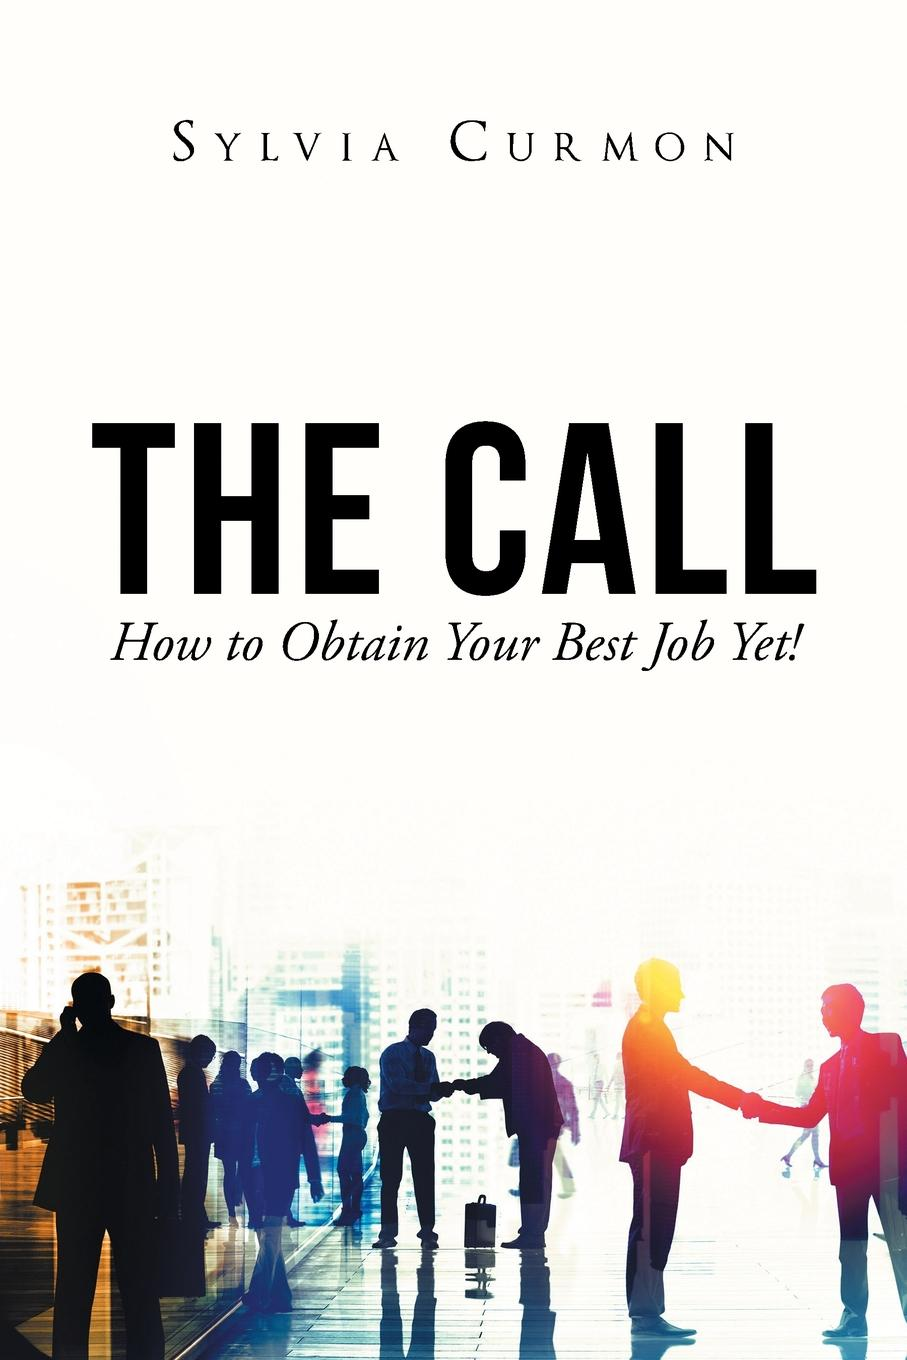 Sylvia Curmon The Call. How to Obtain Your Best Job Yet.